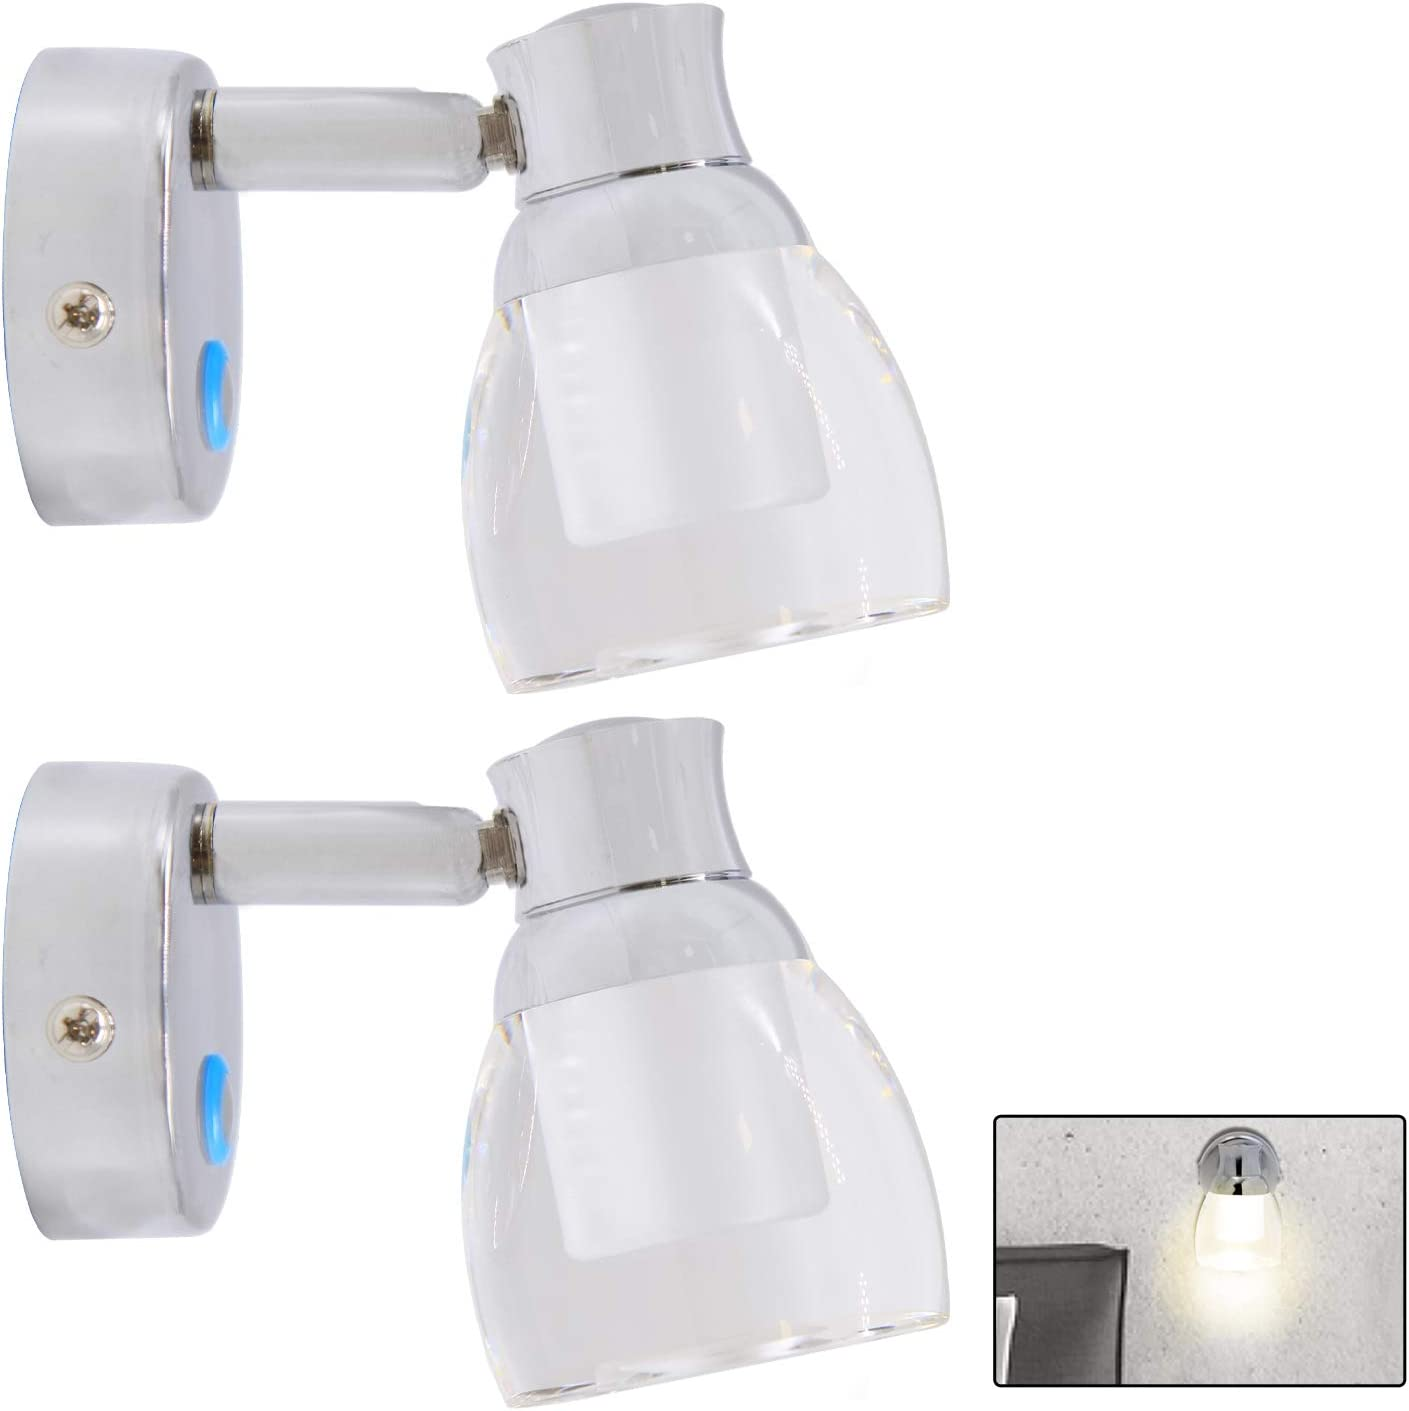 Facon 2-Pack LED RV Wall Sconce LED Decor Lamp Bedside Reading Light with Touch Switch and Blue Indicator Light, 12V DC Interior Light for RV Motorhome Camper Trailer Boat (3500K Warm White, Glass)